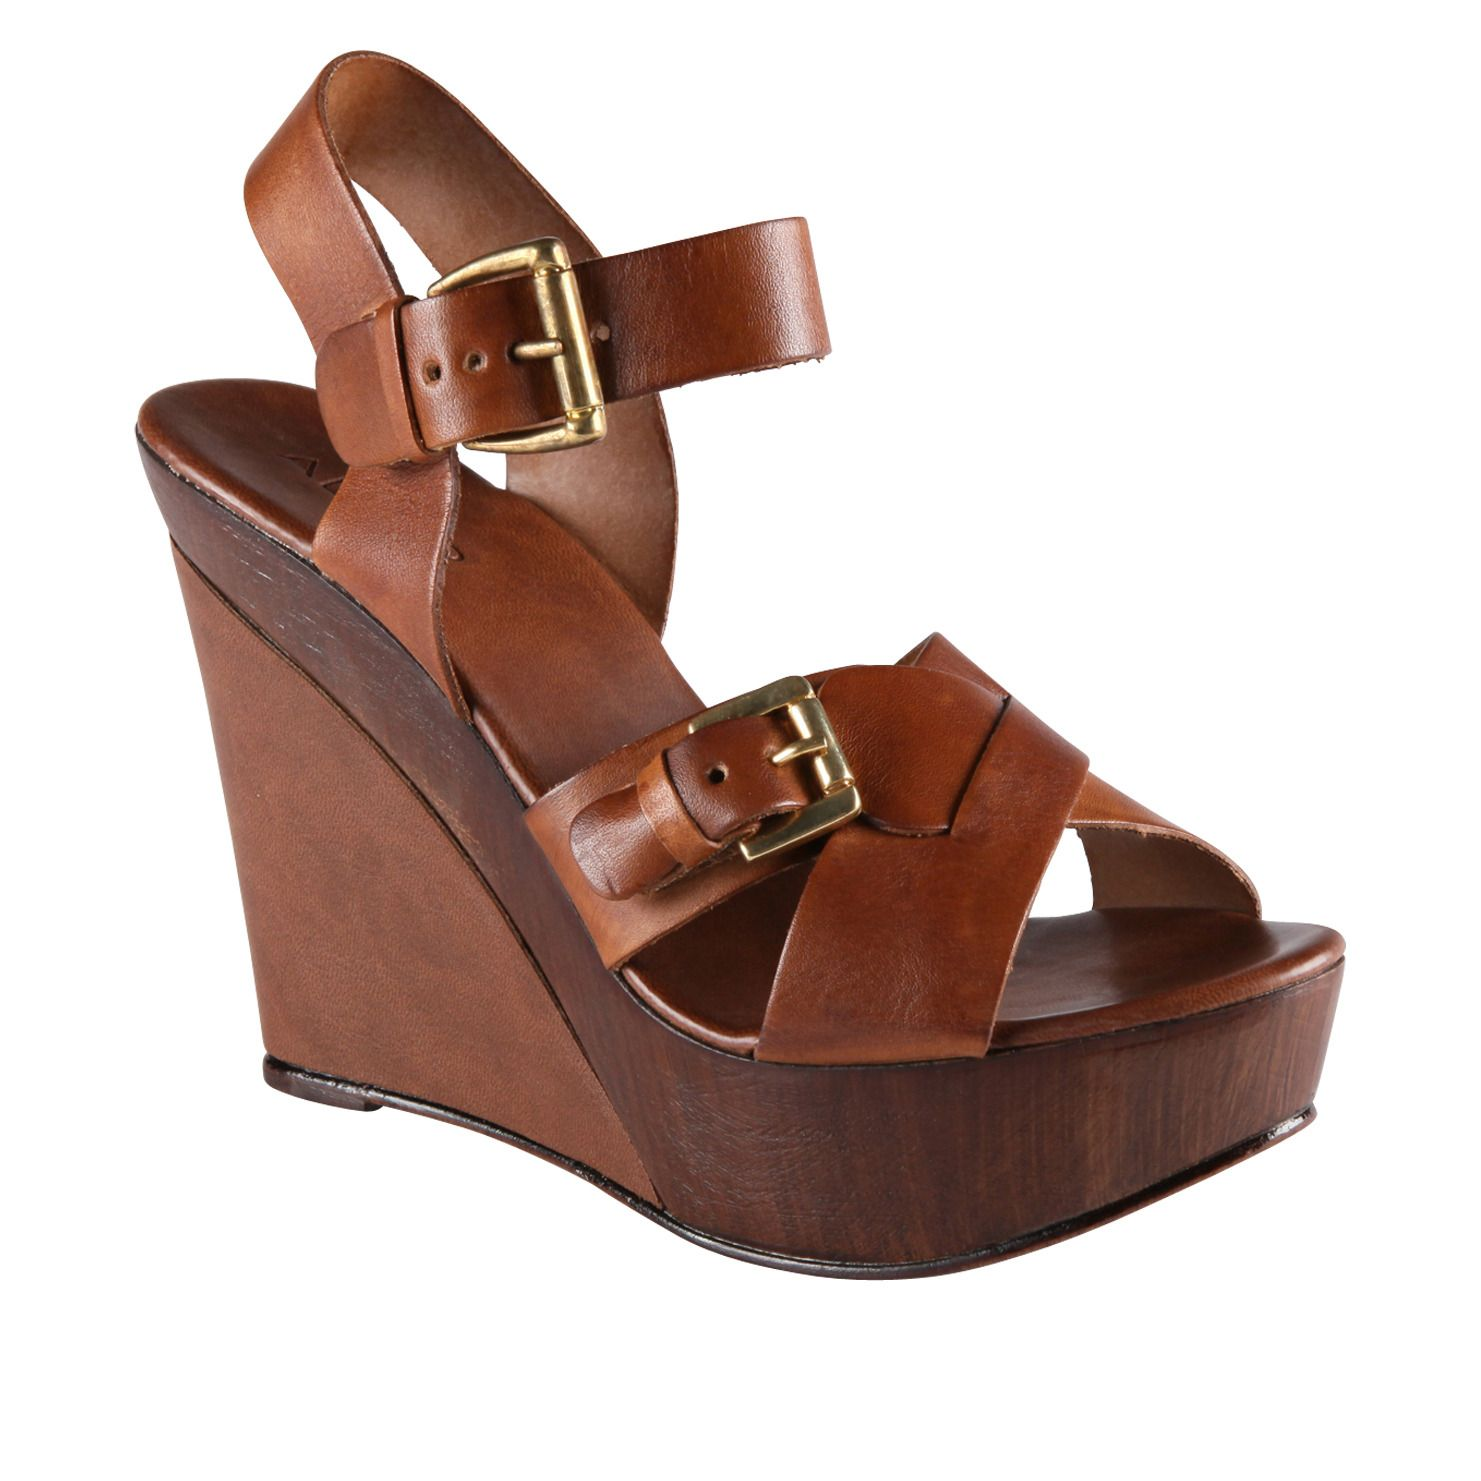 47126a965563 CHEATHAM - women s wedges sandals for sale at ALDO Shoes.